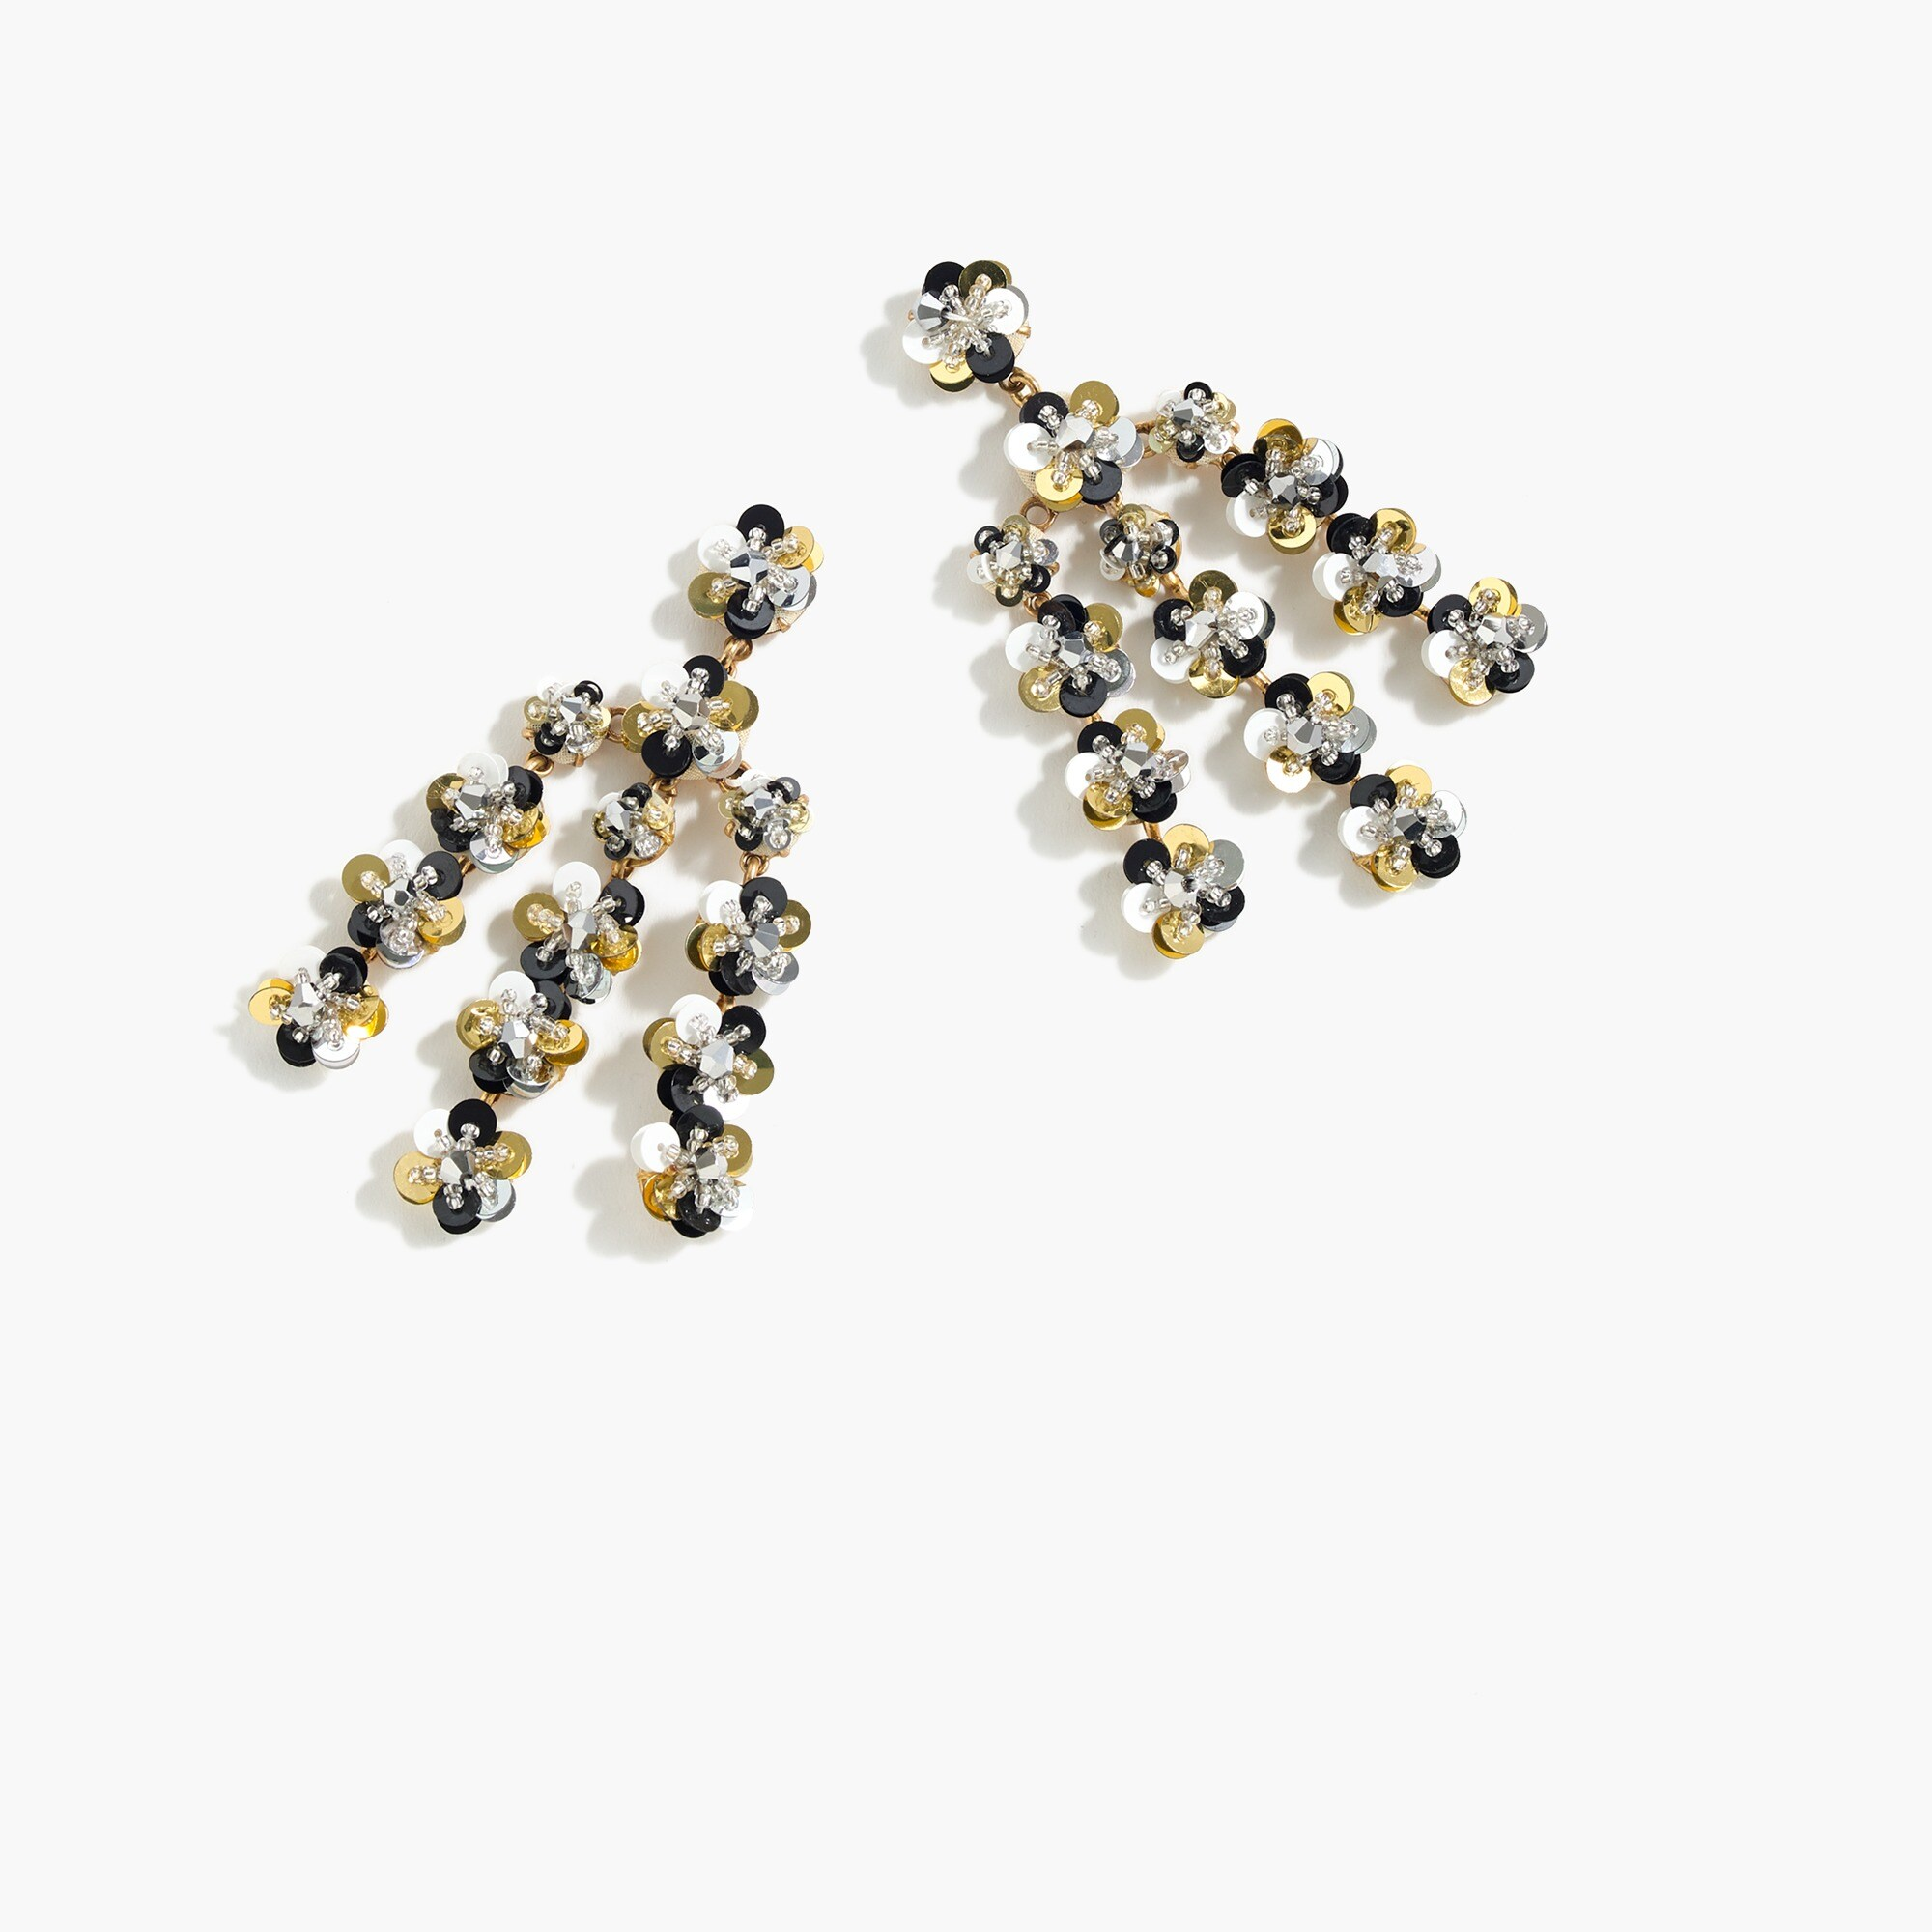 Sequin-daisy chandelier earrings